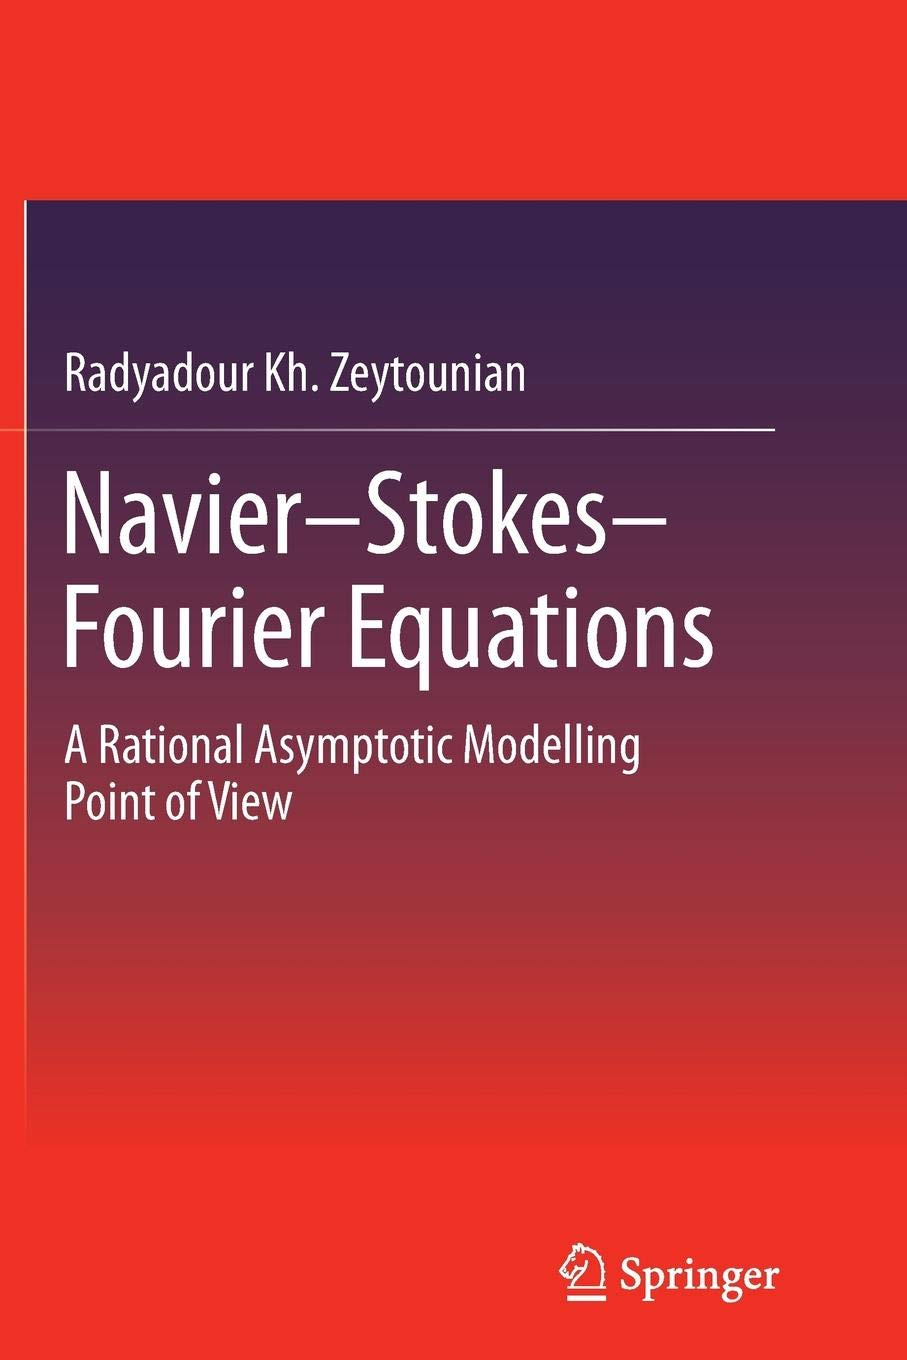 Navier-Stokes-Fourier Equations: A Rational Asymptotic Modelling Point of View